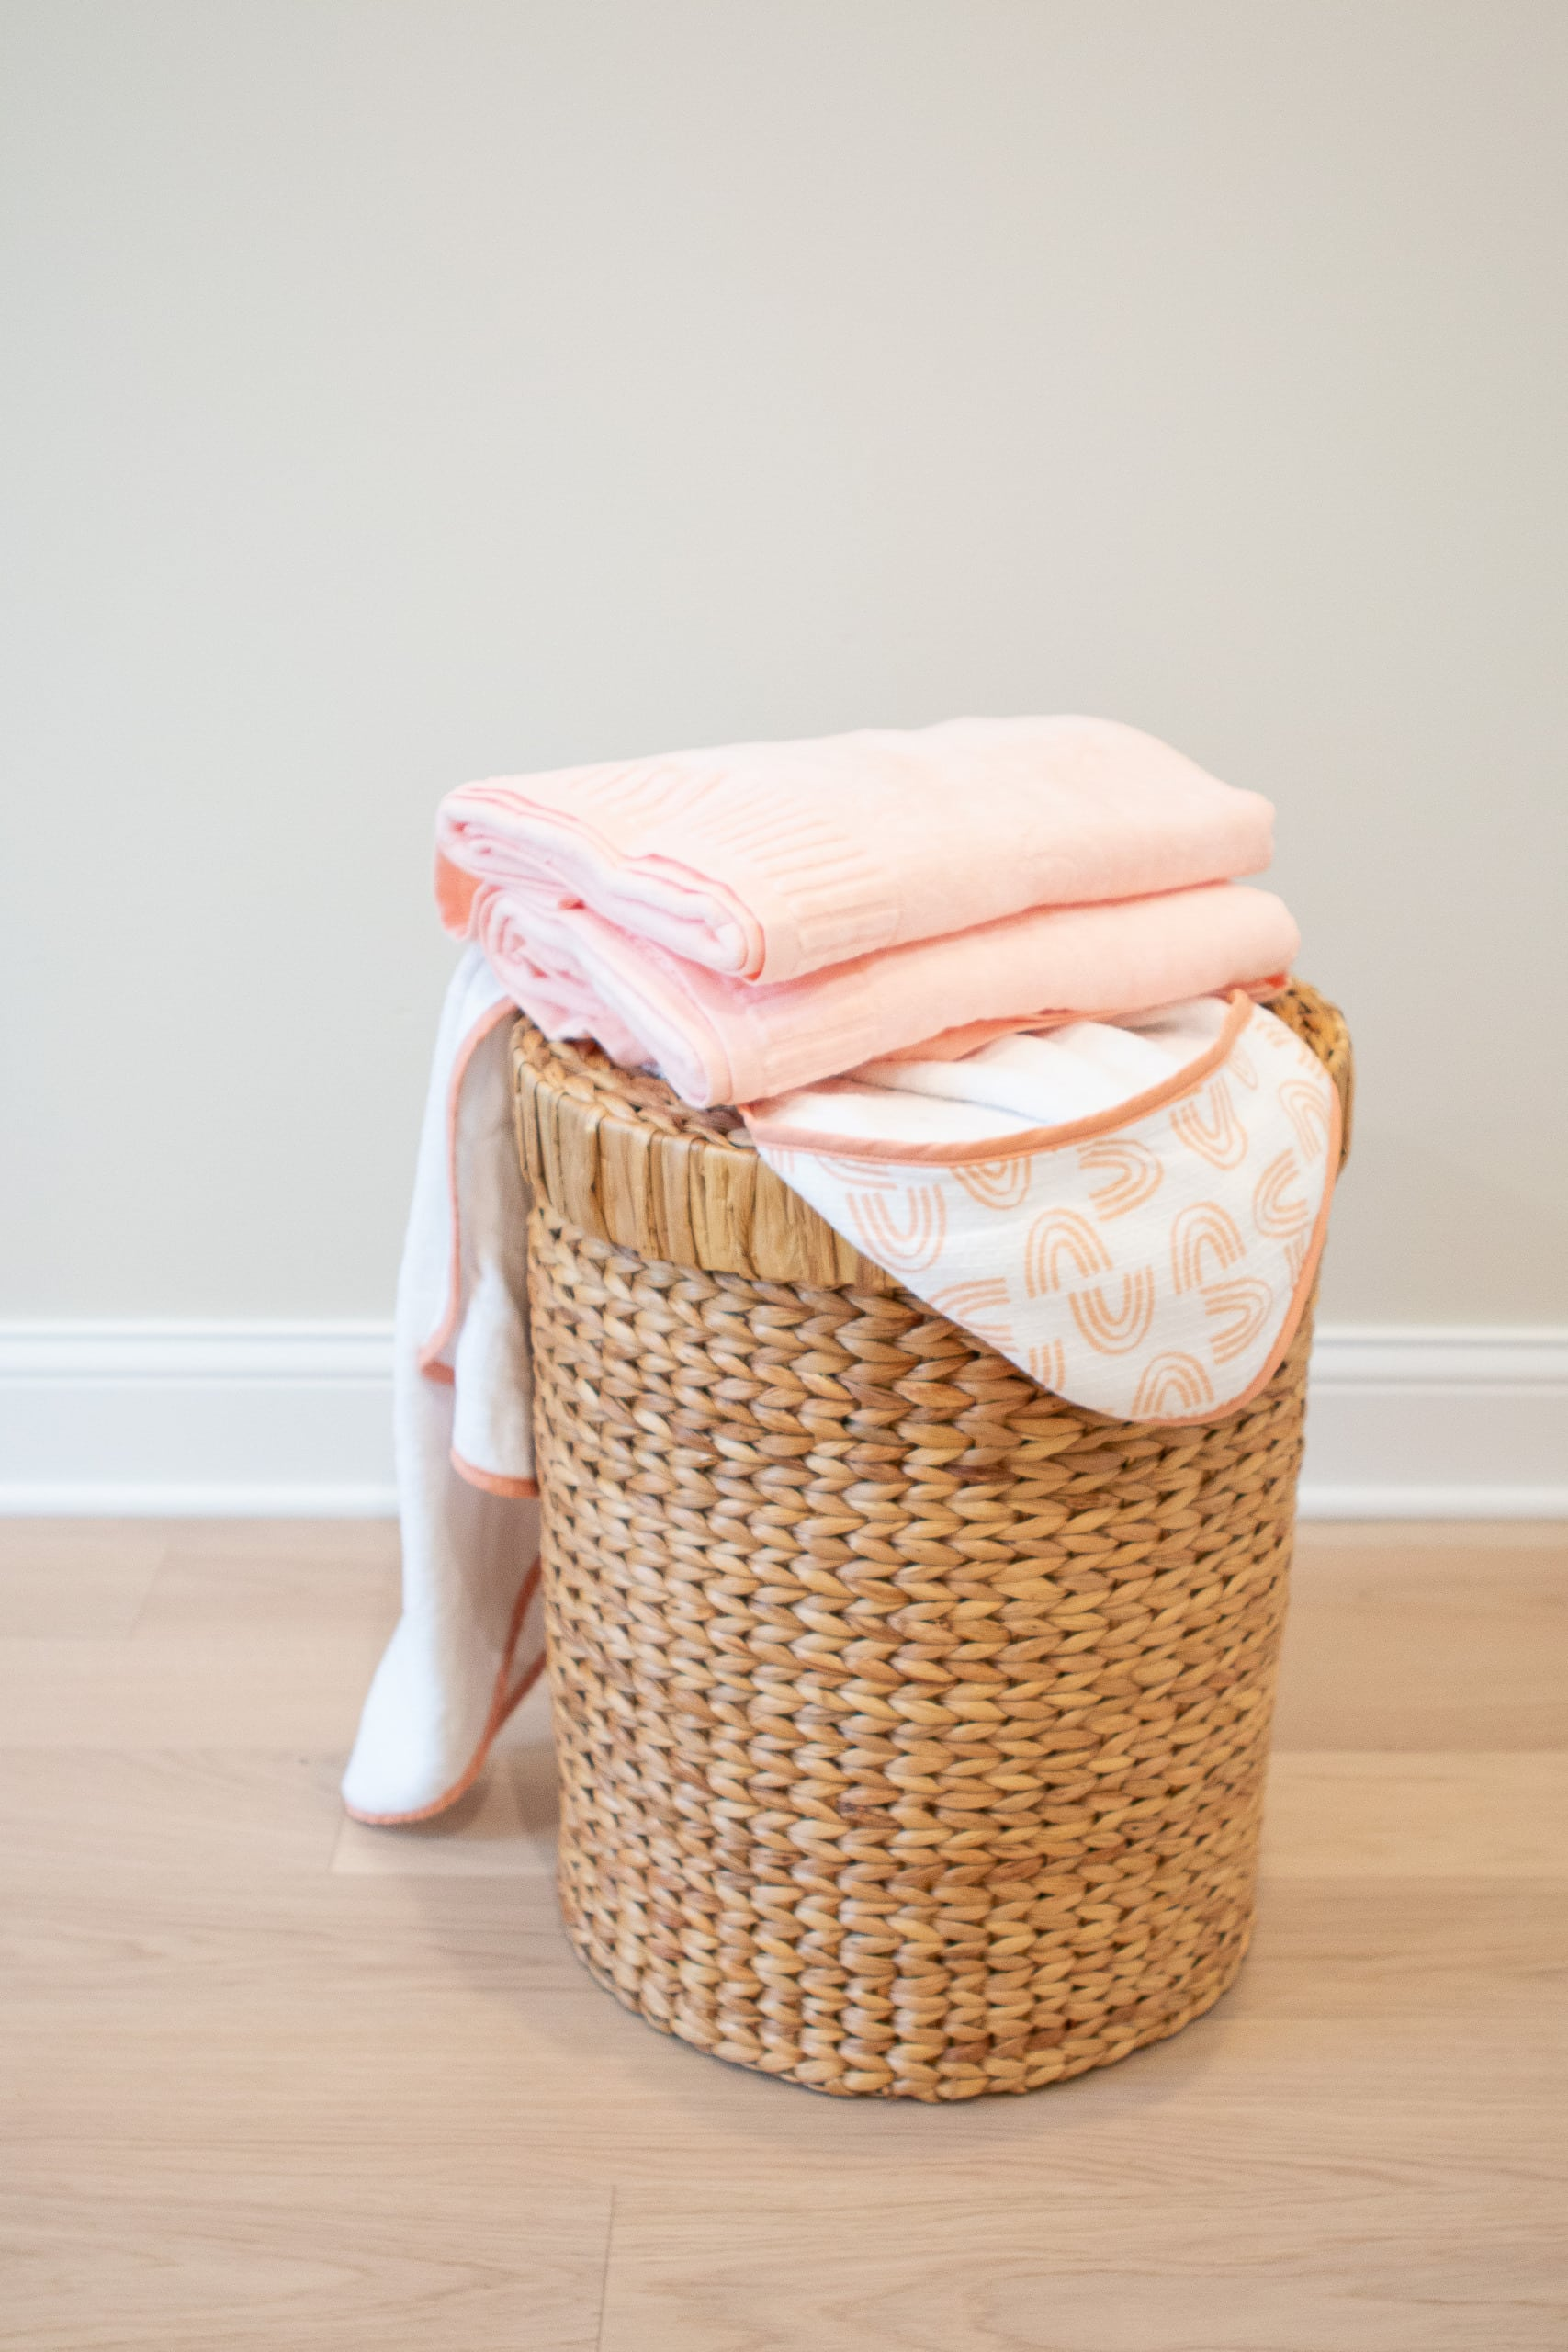 Bath towels for baby